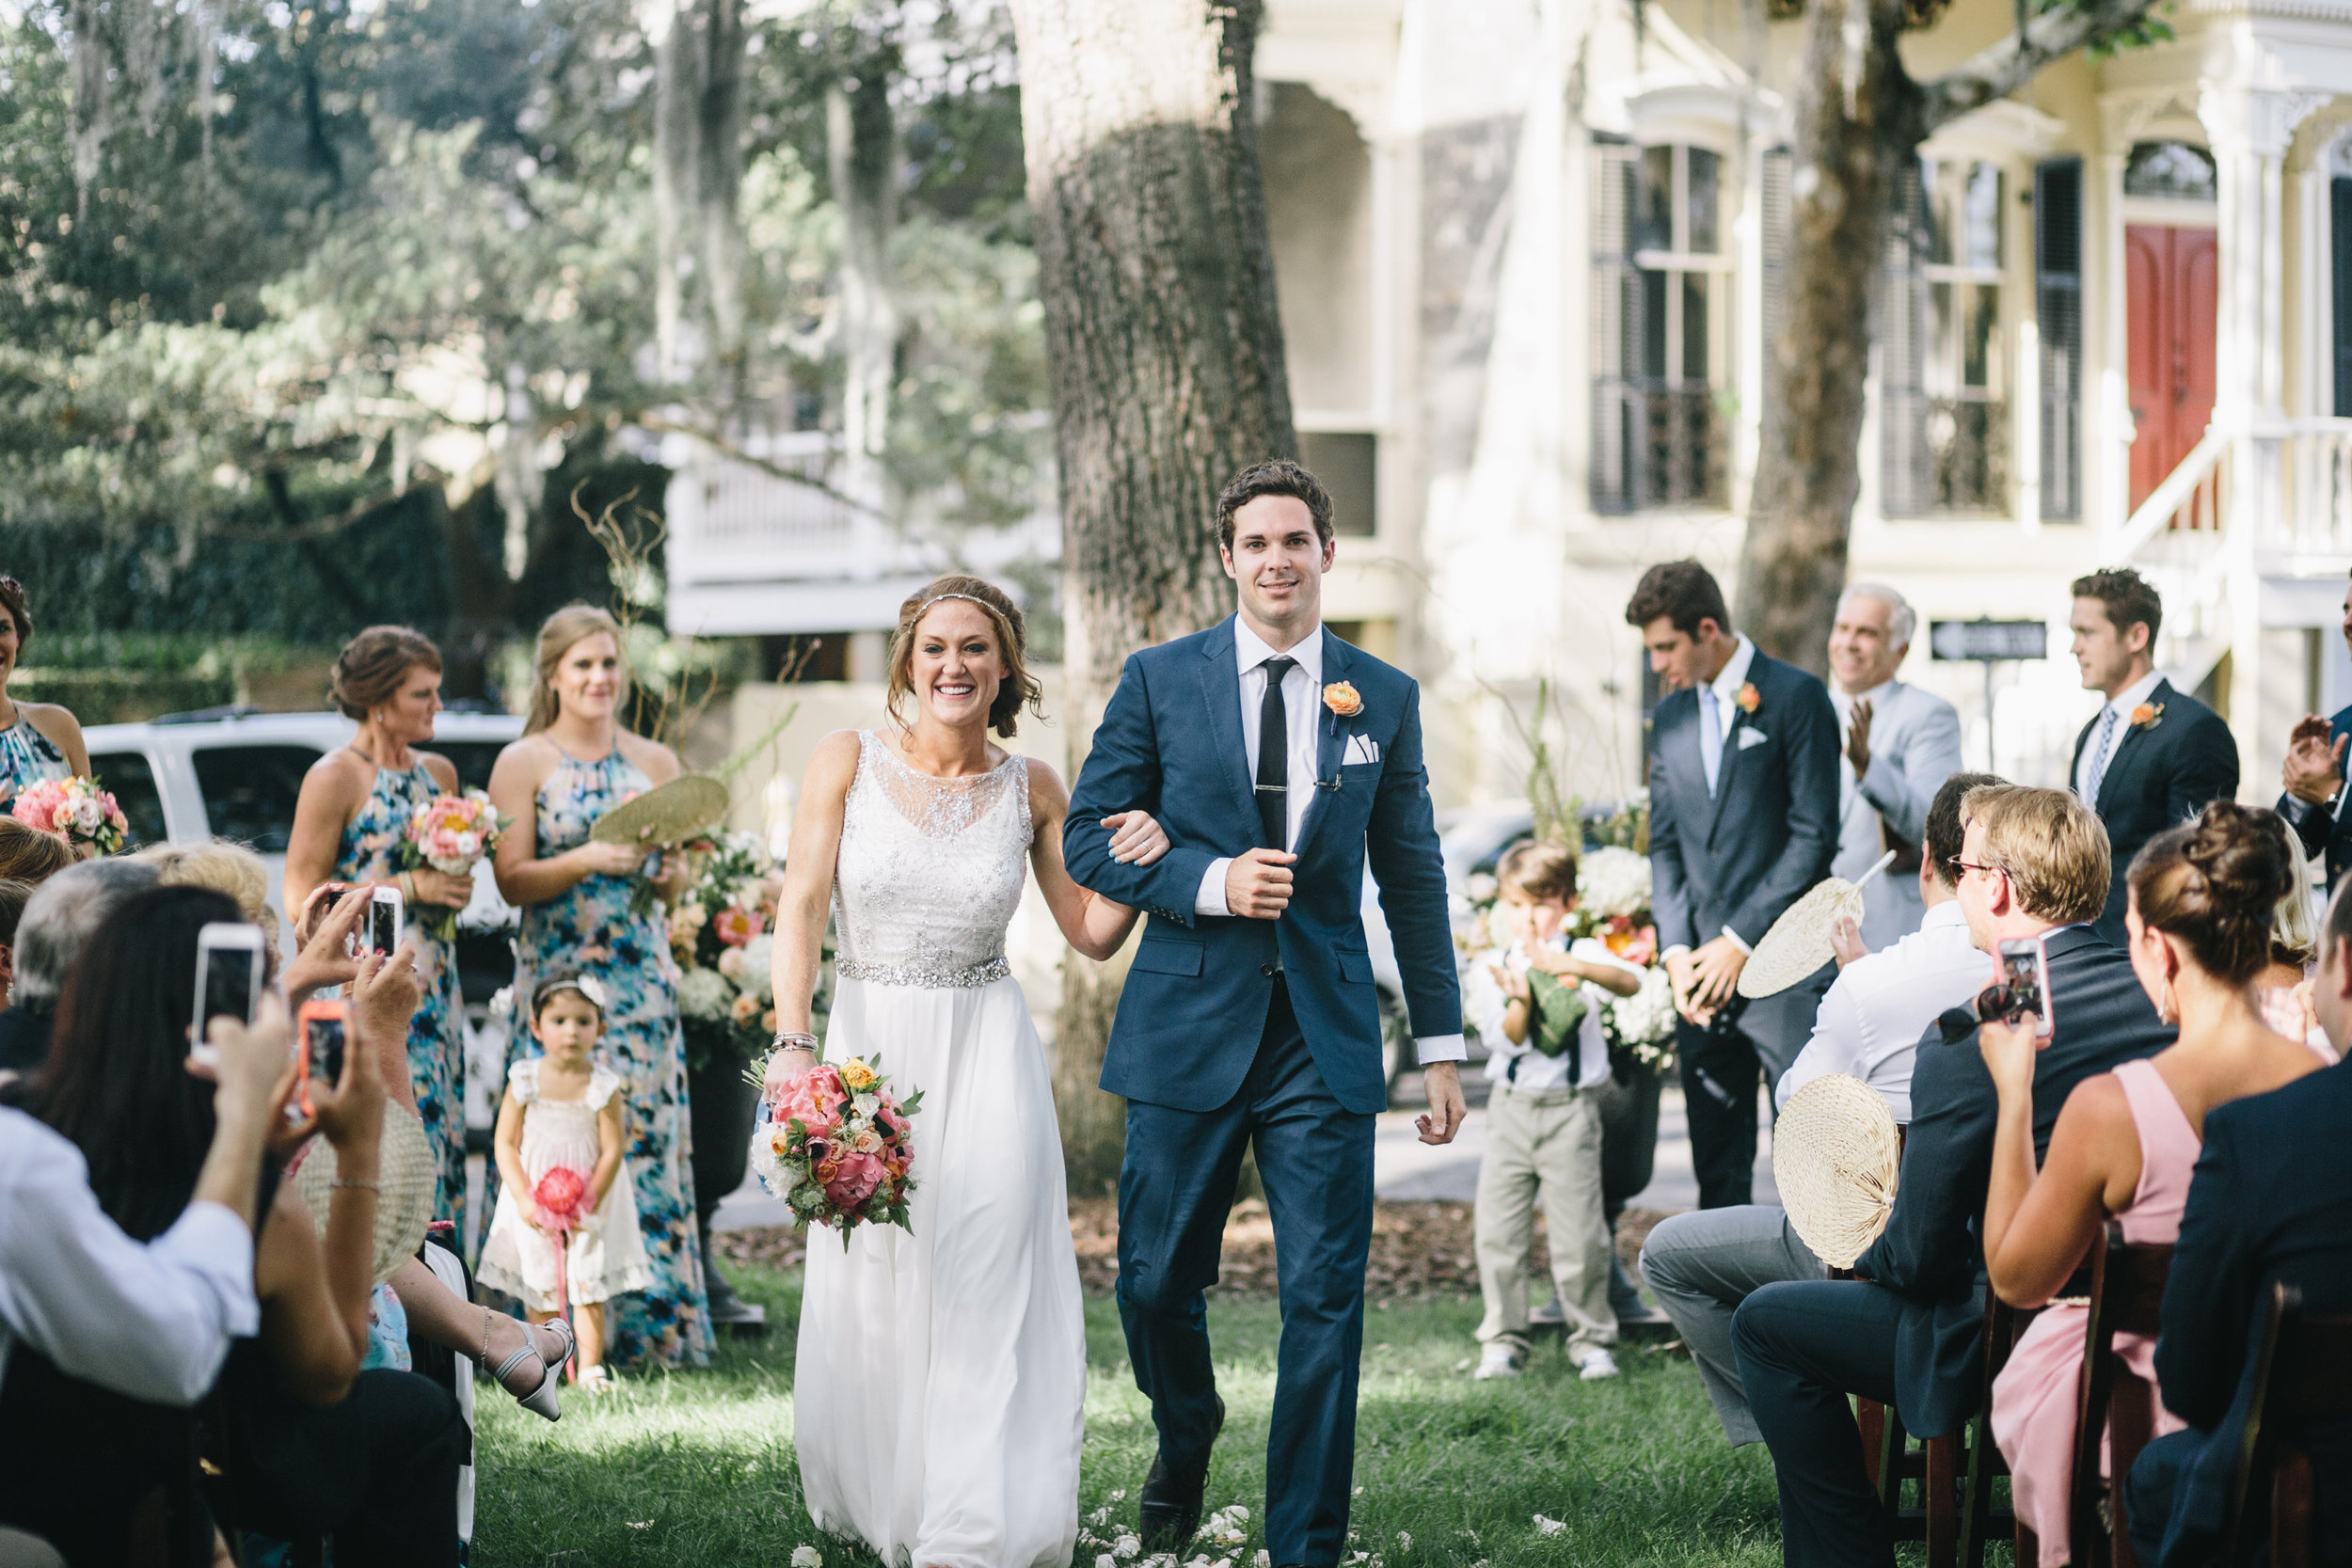 mackensey-alexander-photography-ivory-and-beau-bridal-boutique-from-this-day-forward-wedding-planning-sarah-seven-gwen-savannah-bridal-boutique-savannah-wedding-dresses-savannah-bridal-boutique-savannah-wedding-planner-savannah-weddings-35.jpg